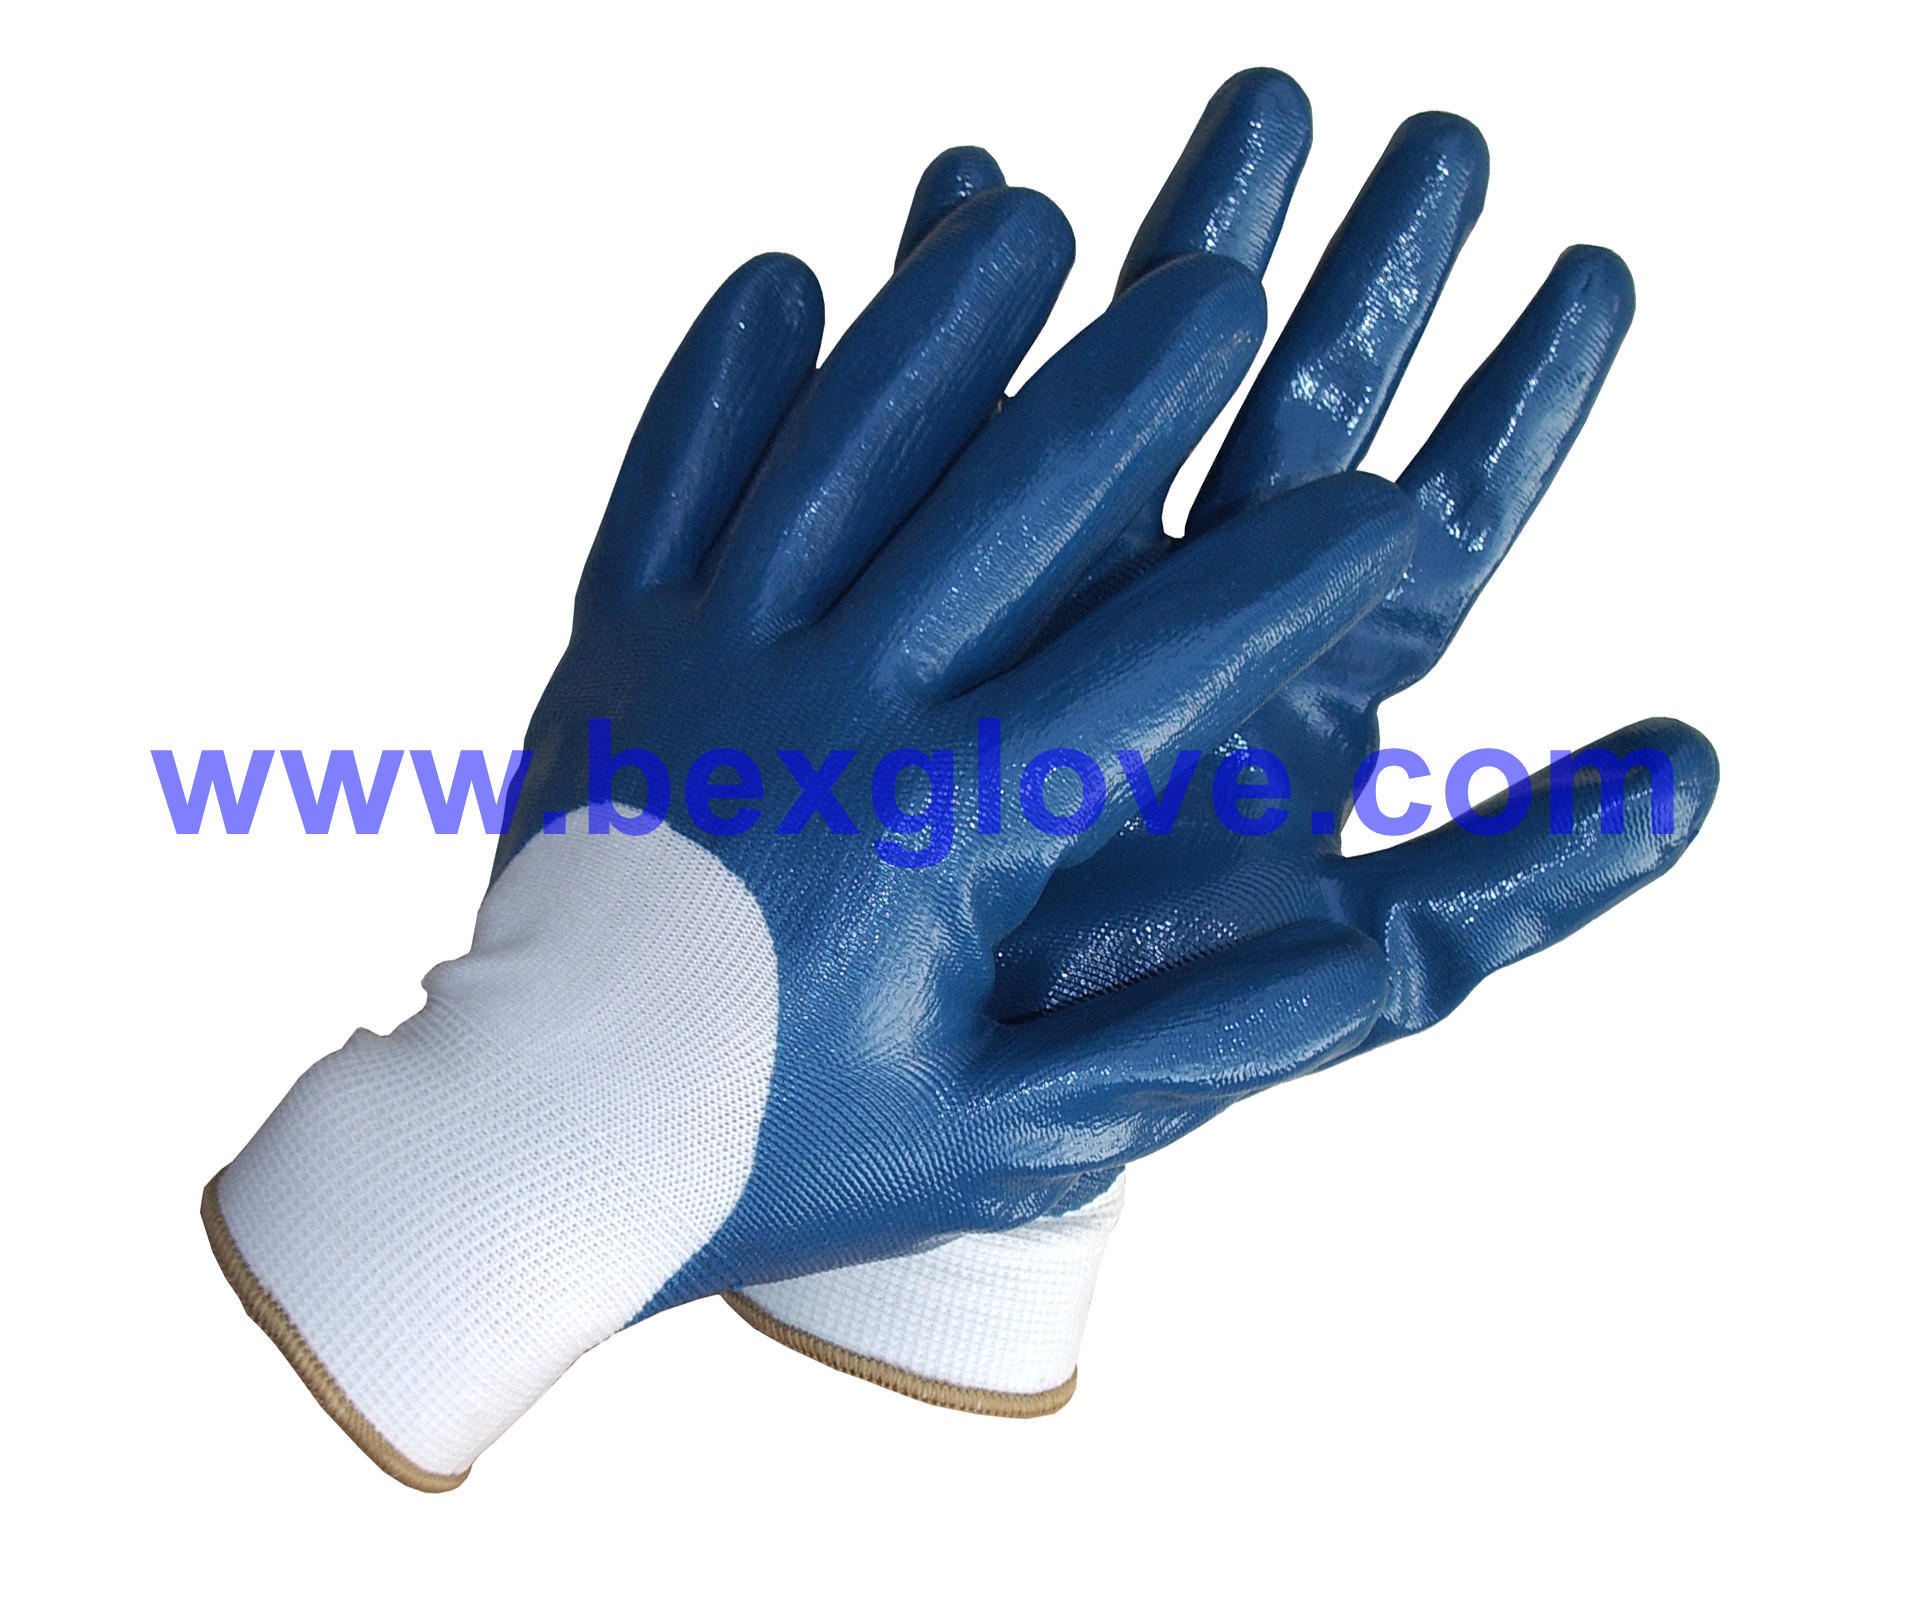 13 Gauge Polyester Liner, Nitrile Coating, 3/4, Smooth Finish Safety Gloves